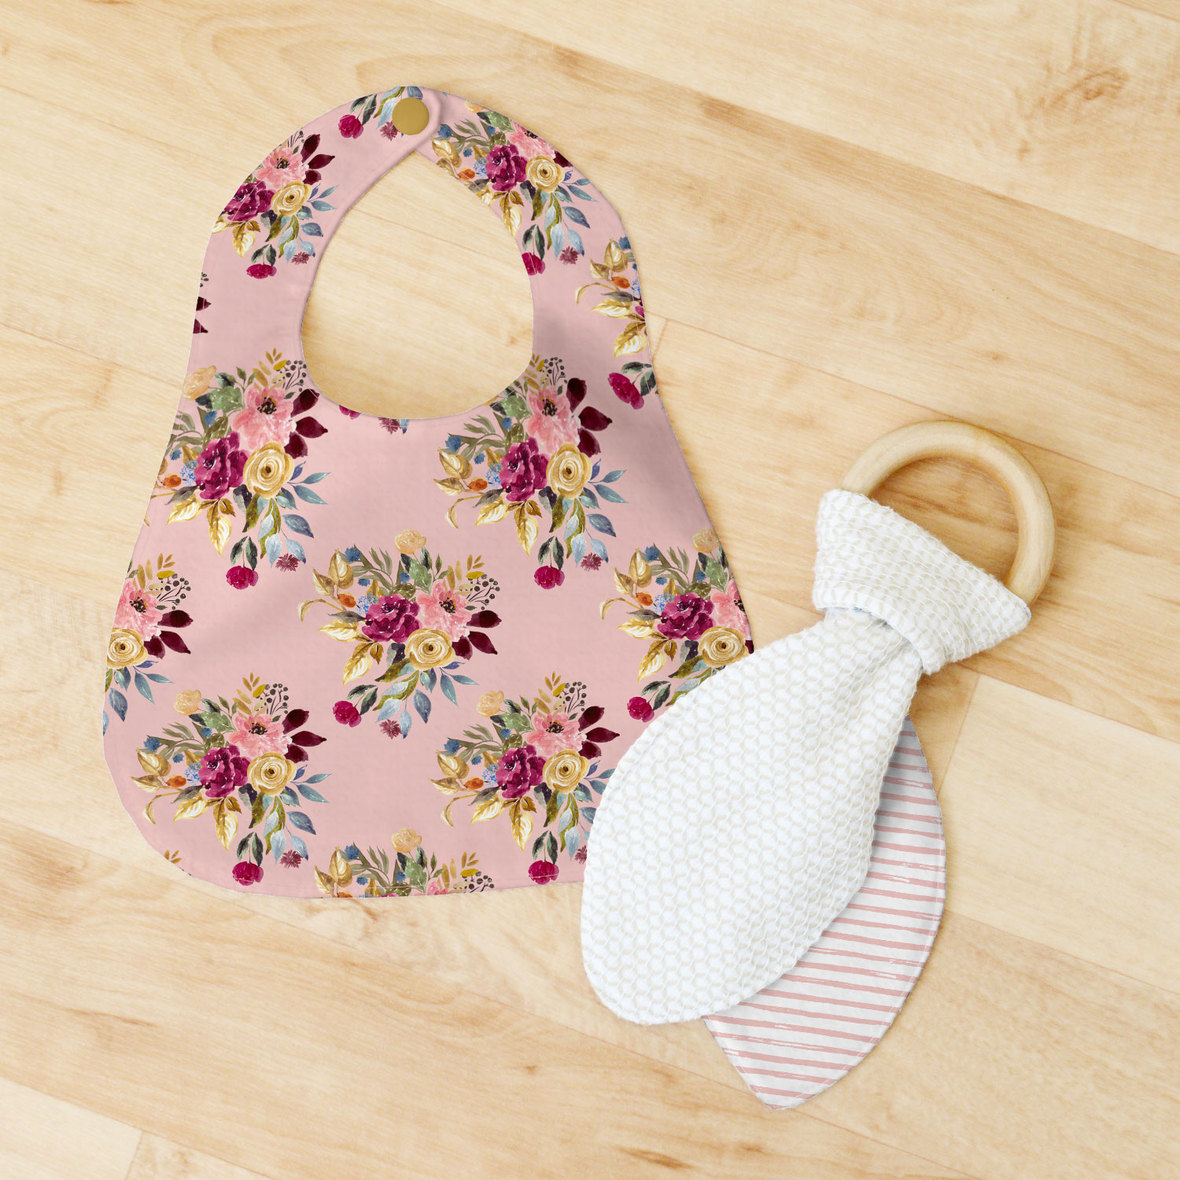 Bib-and-Teether-Little-Rose-Bouquet-Rosy-Pink